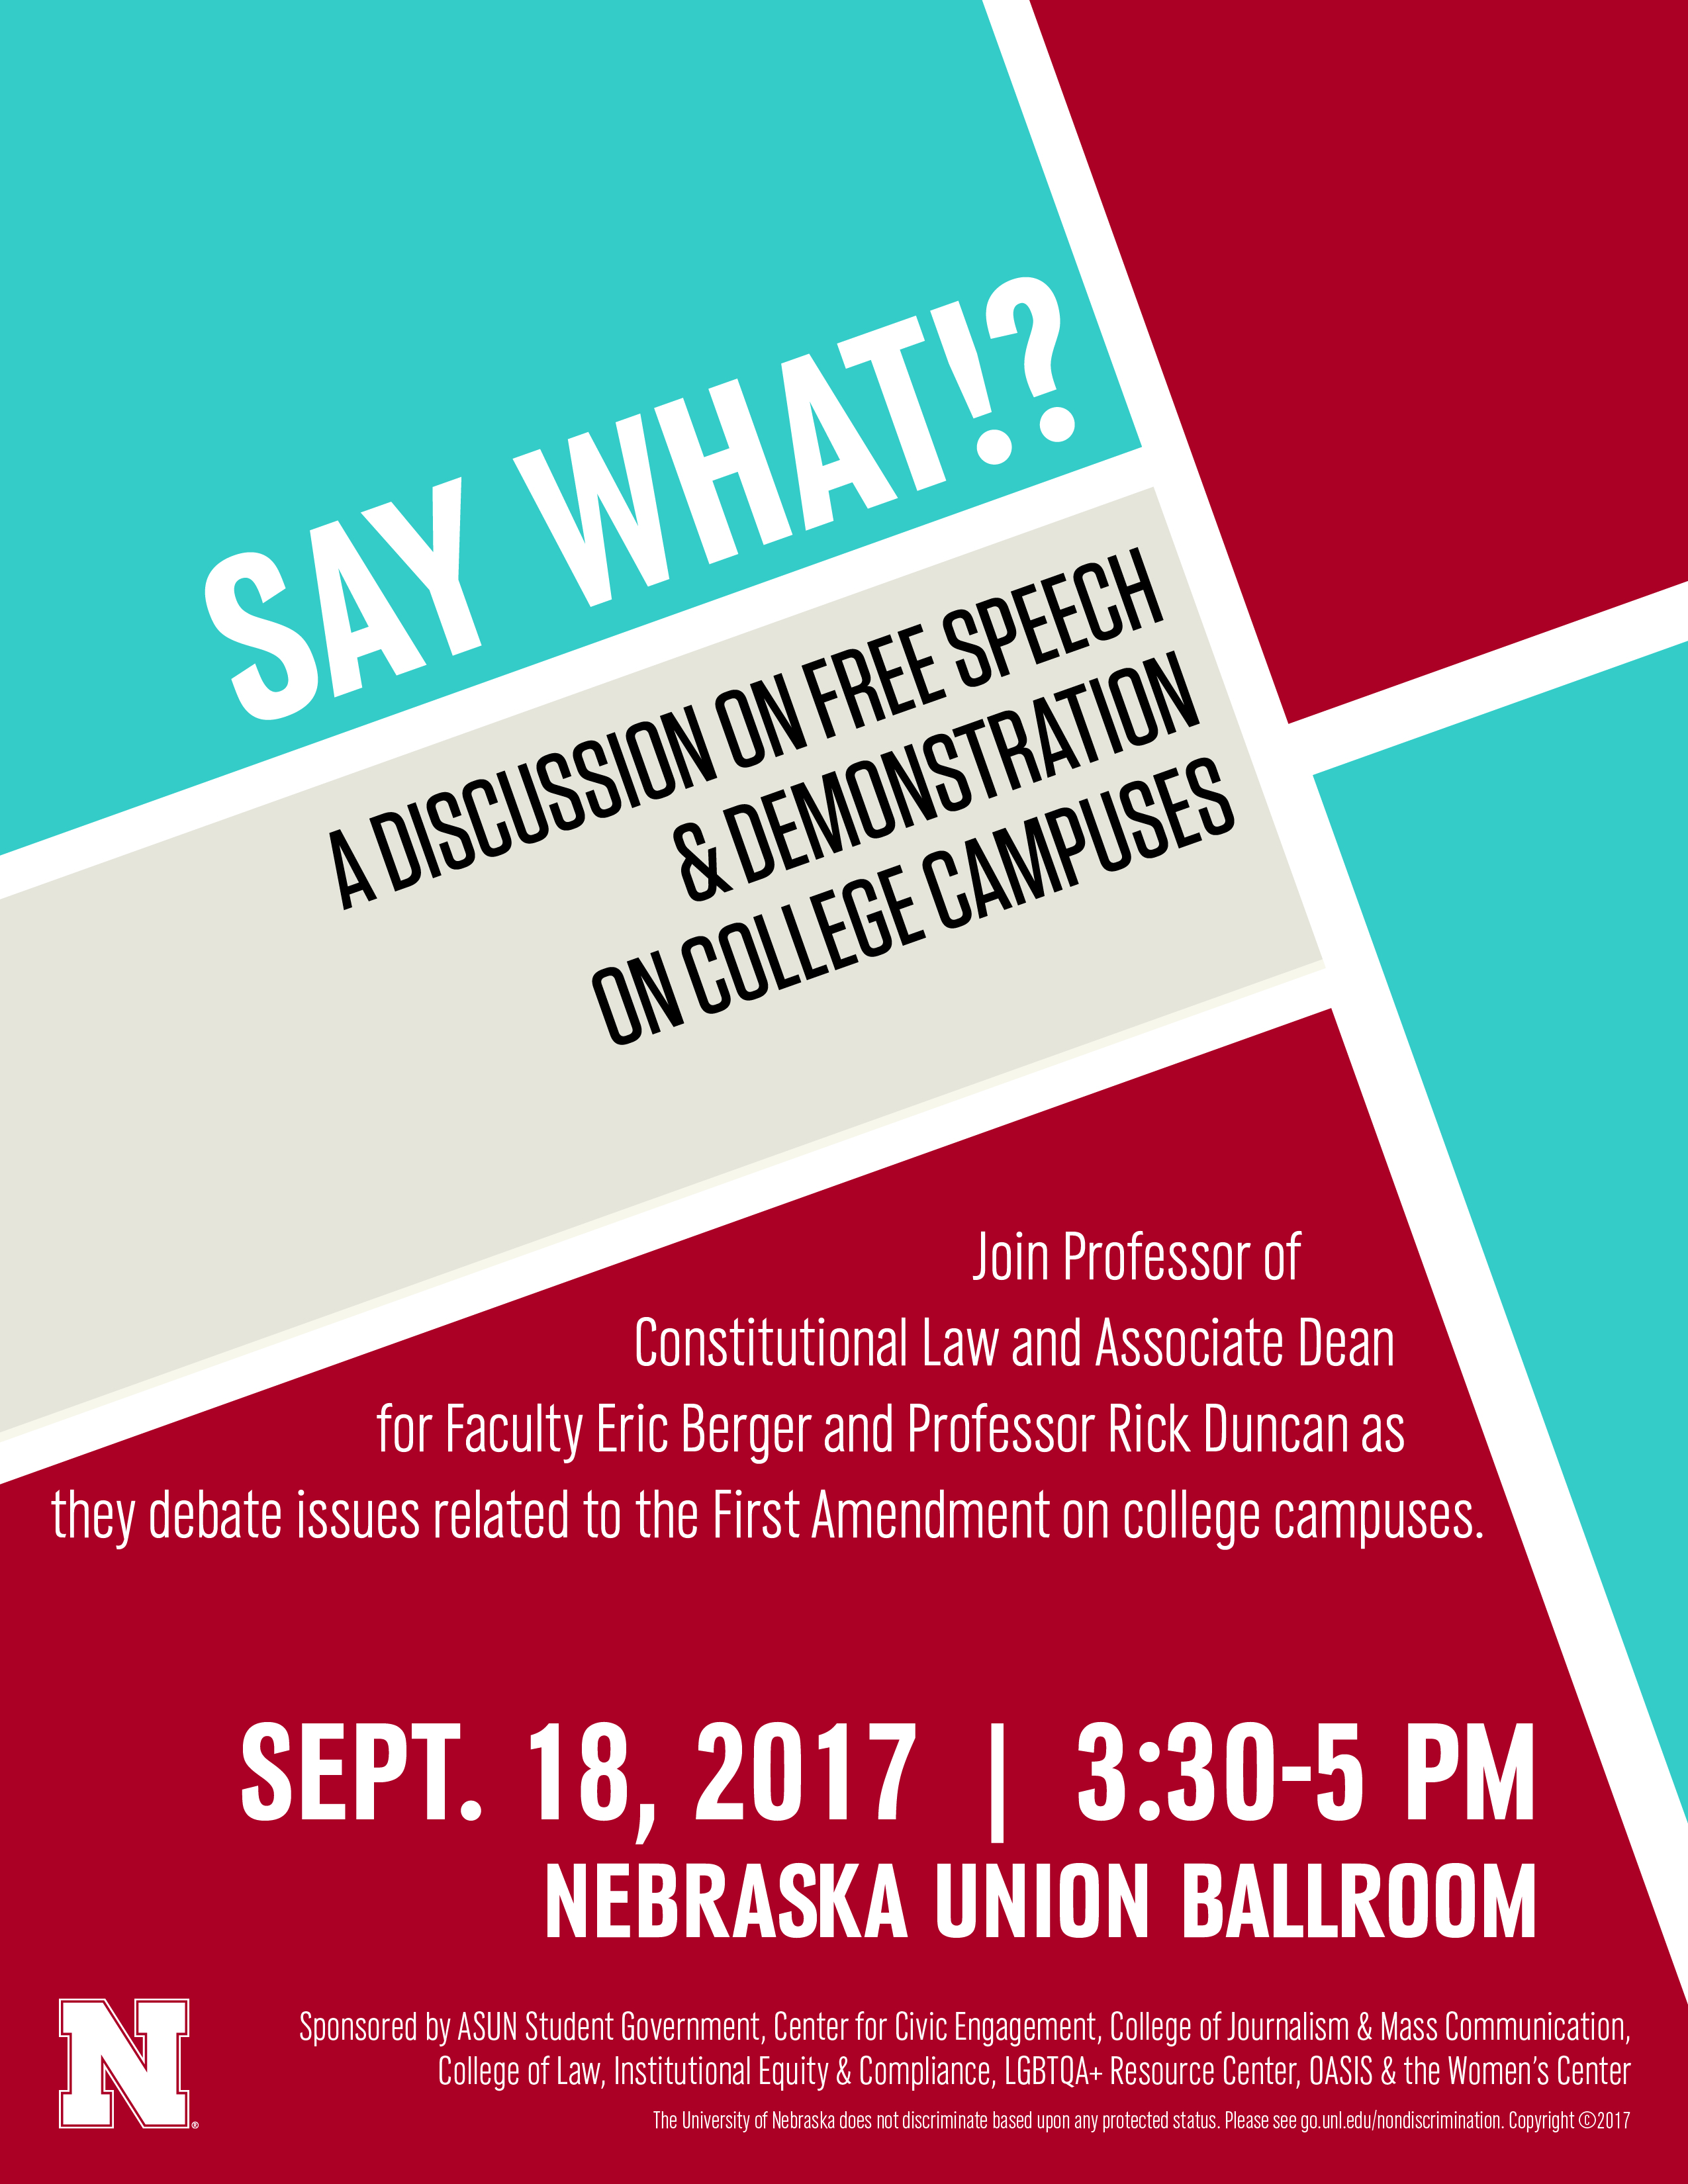 Constitution Day activity at the University of Nebraska-Lincoln will examine freedom of expression.